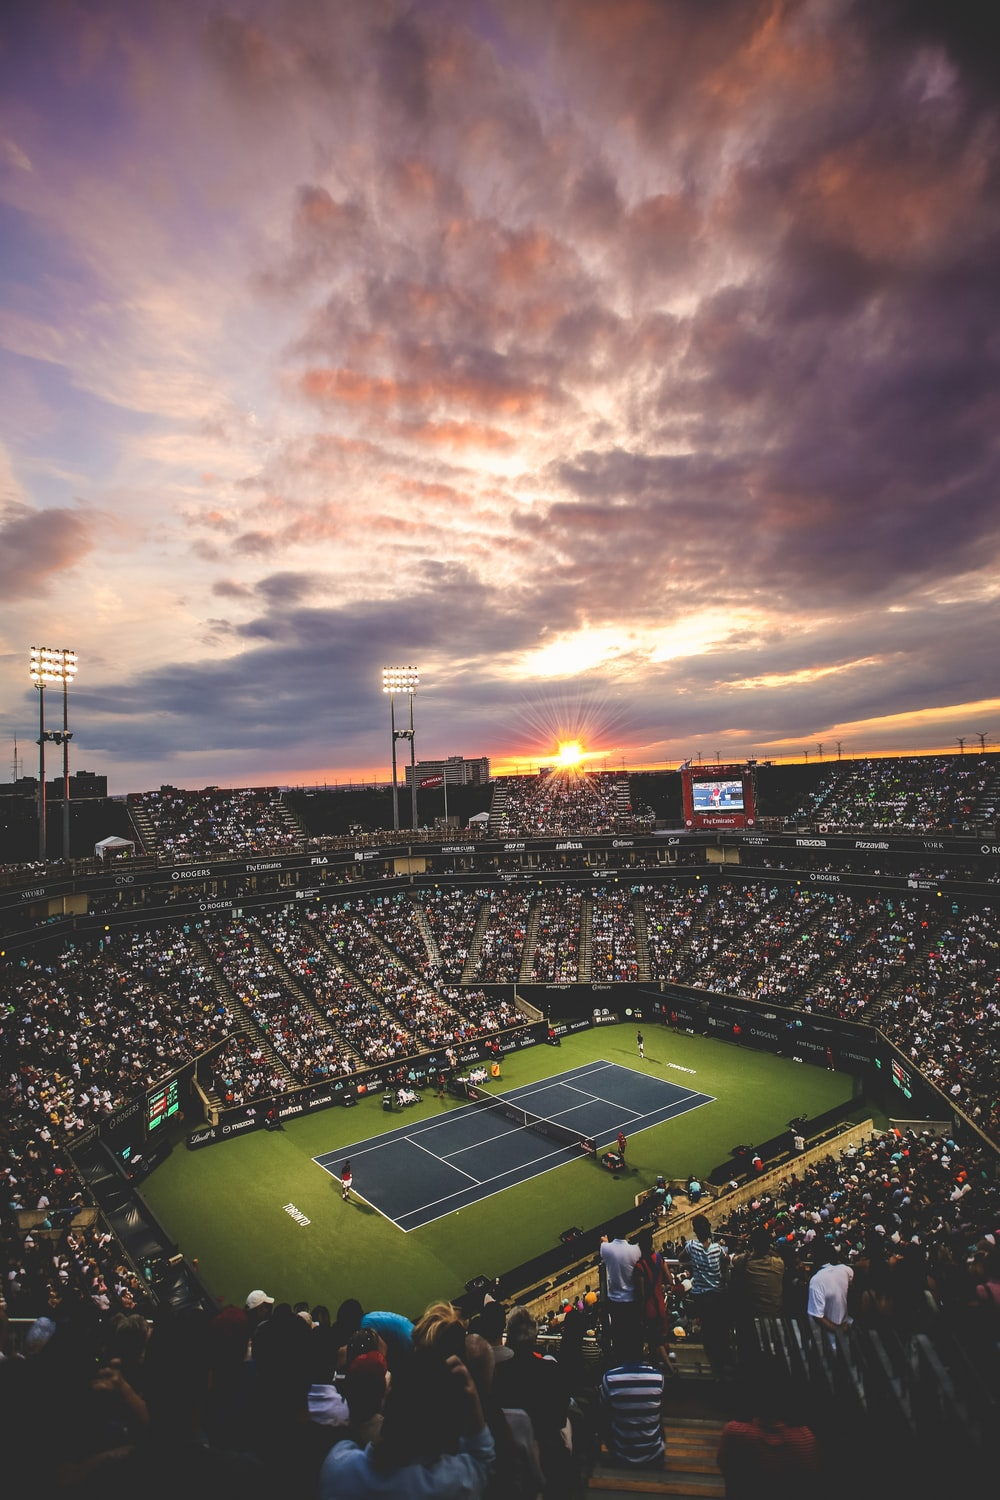 people at the tennis court stadium during sunset